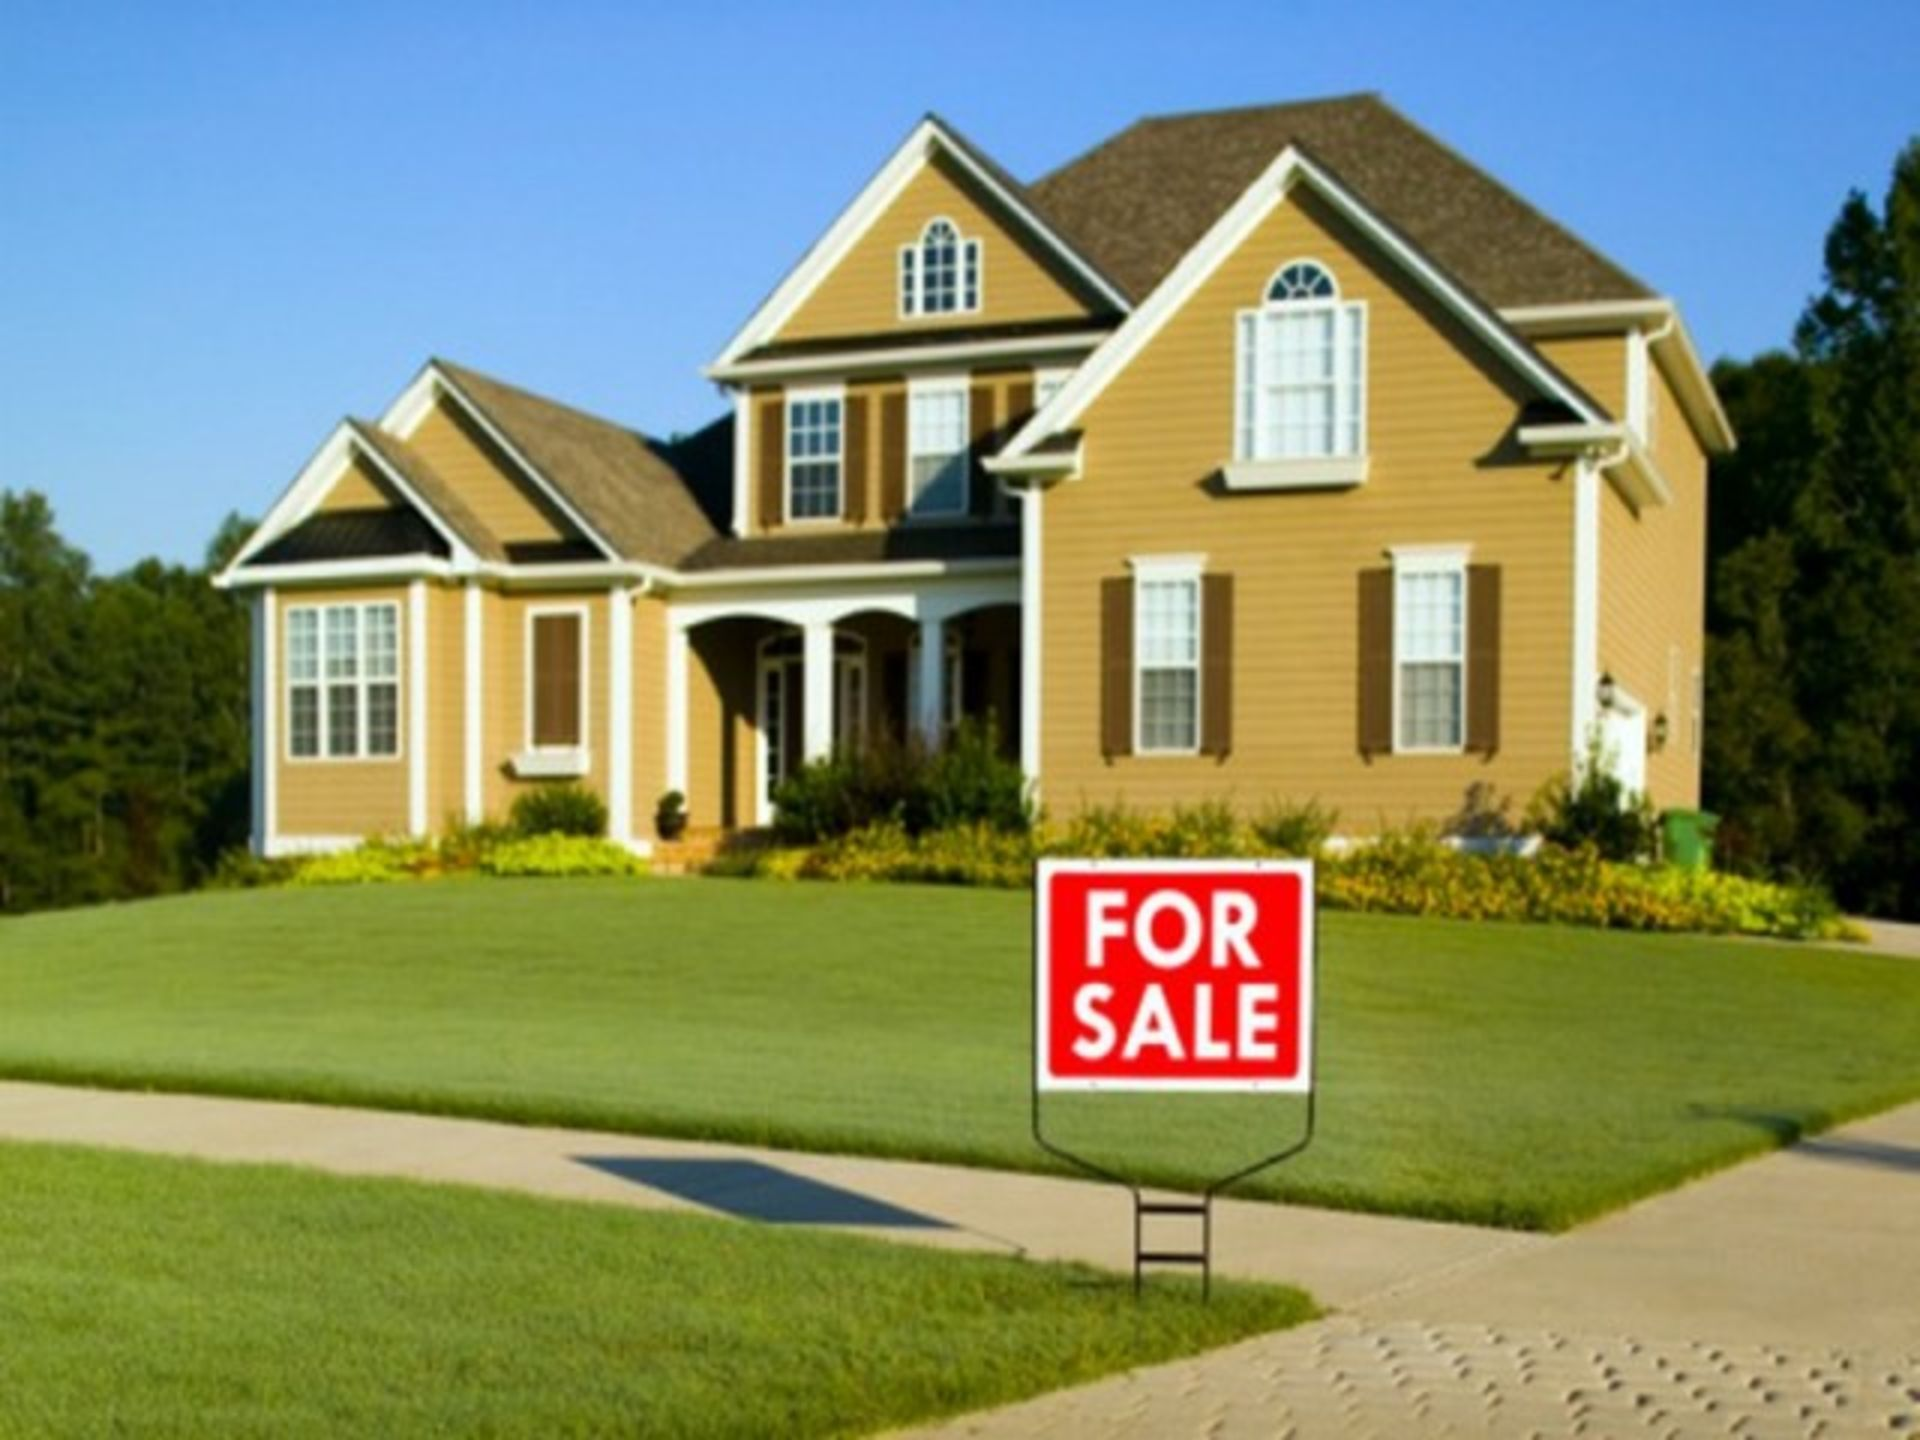 Foreclosed homes dip to 12-year low